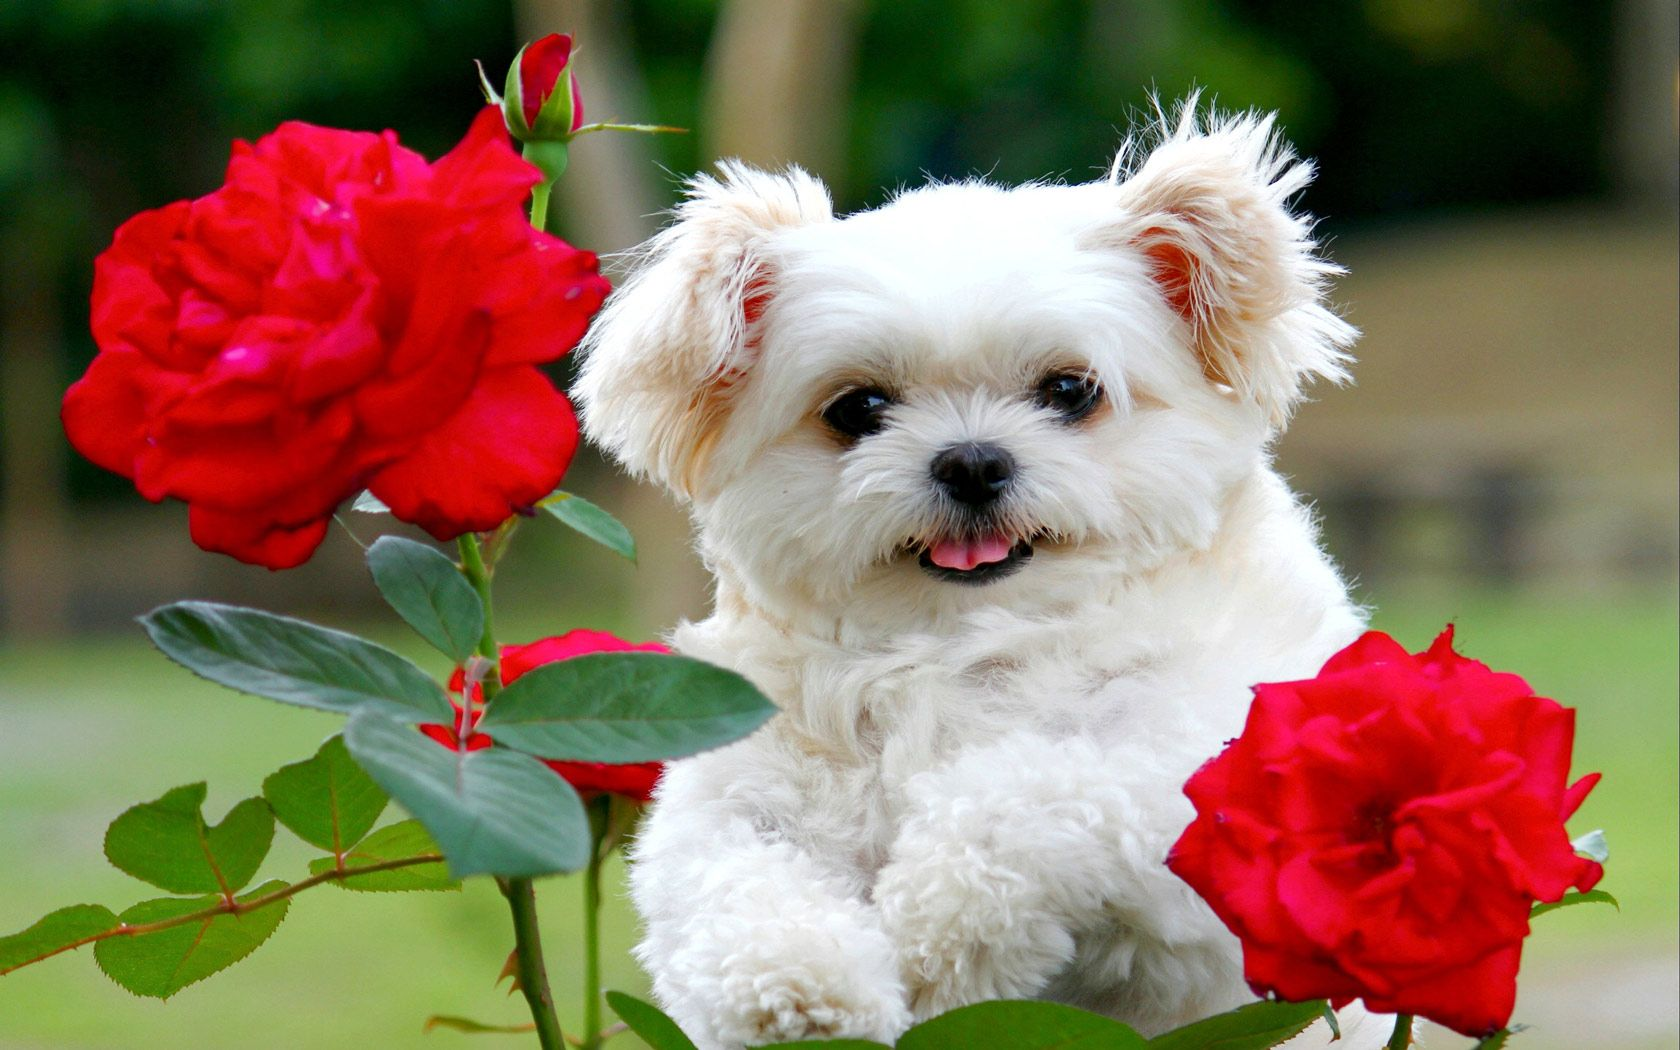 A Second Look Why The Dog Tried To Eat The Child Cute Fluffy Puppies Cute Puppy Wallpaper Cute White Puppies